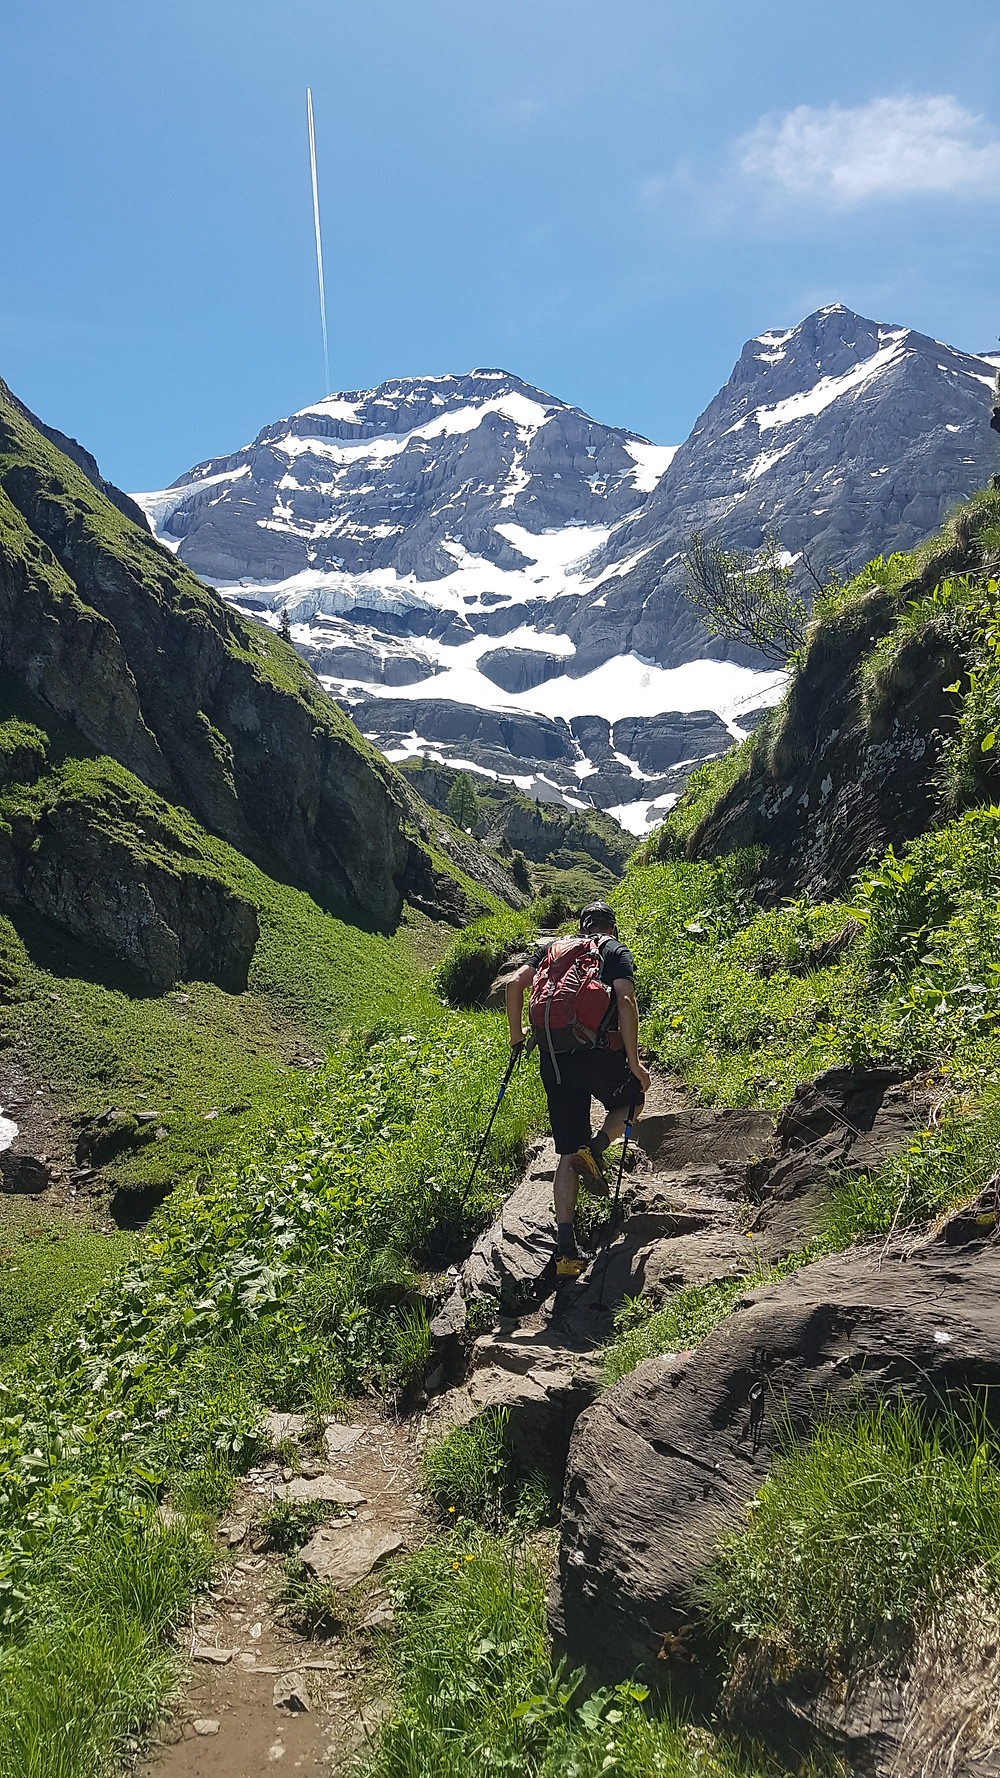 An early retirement day hike in the Alps